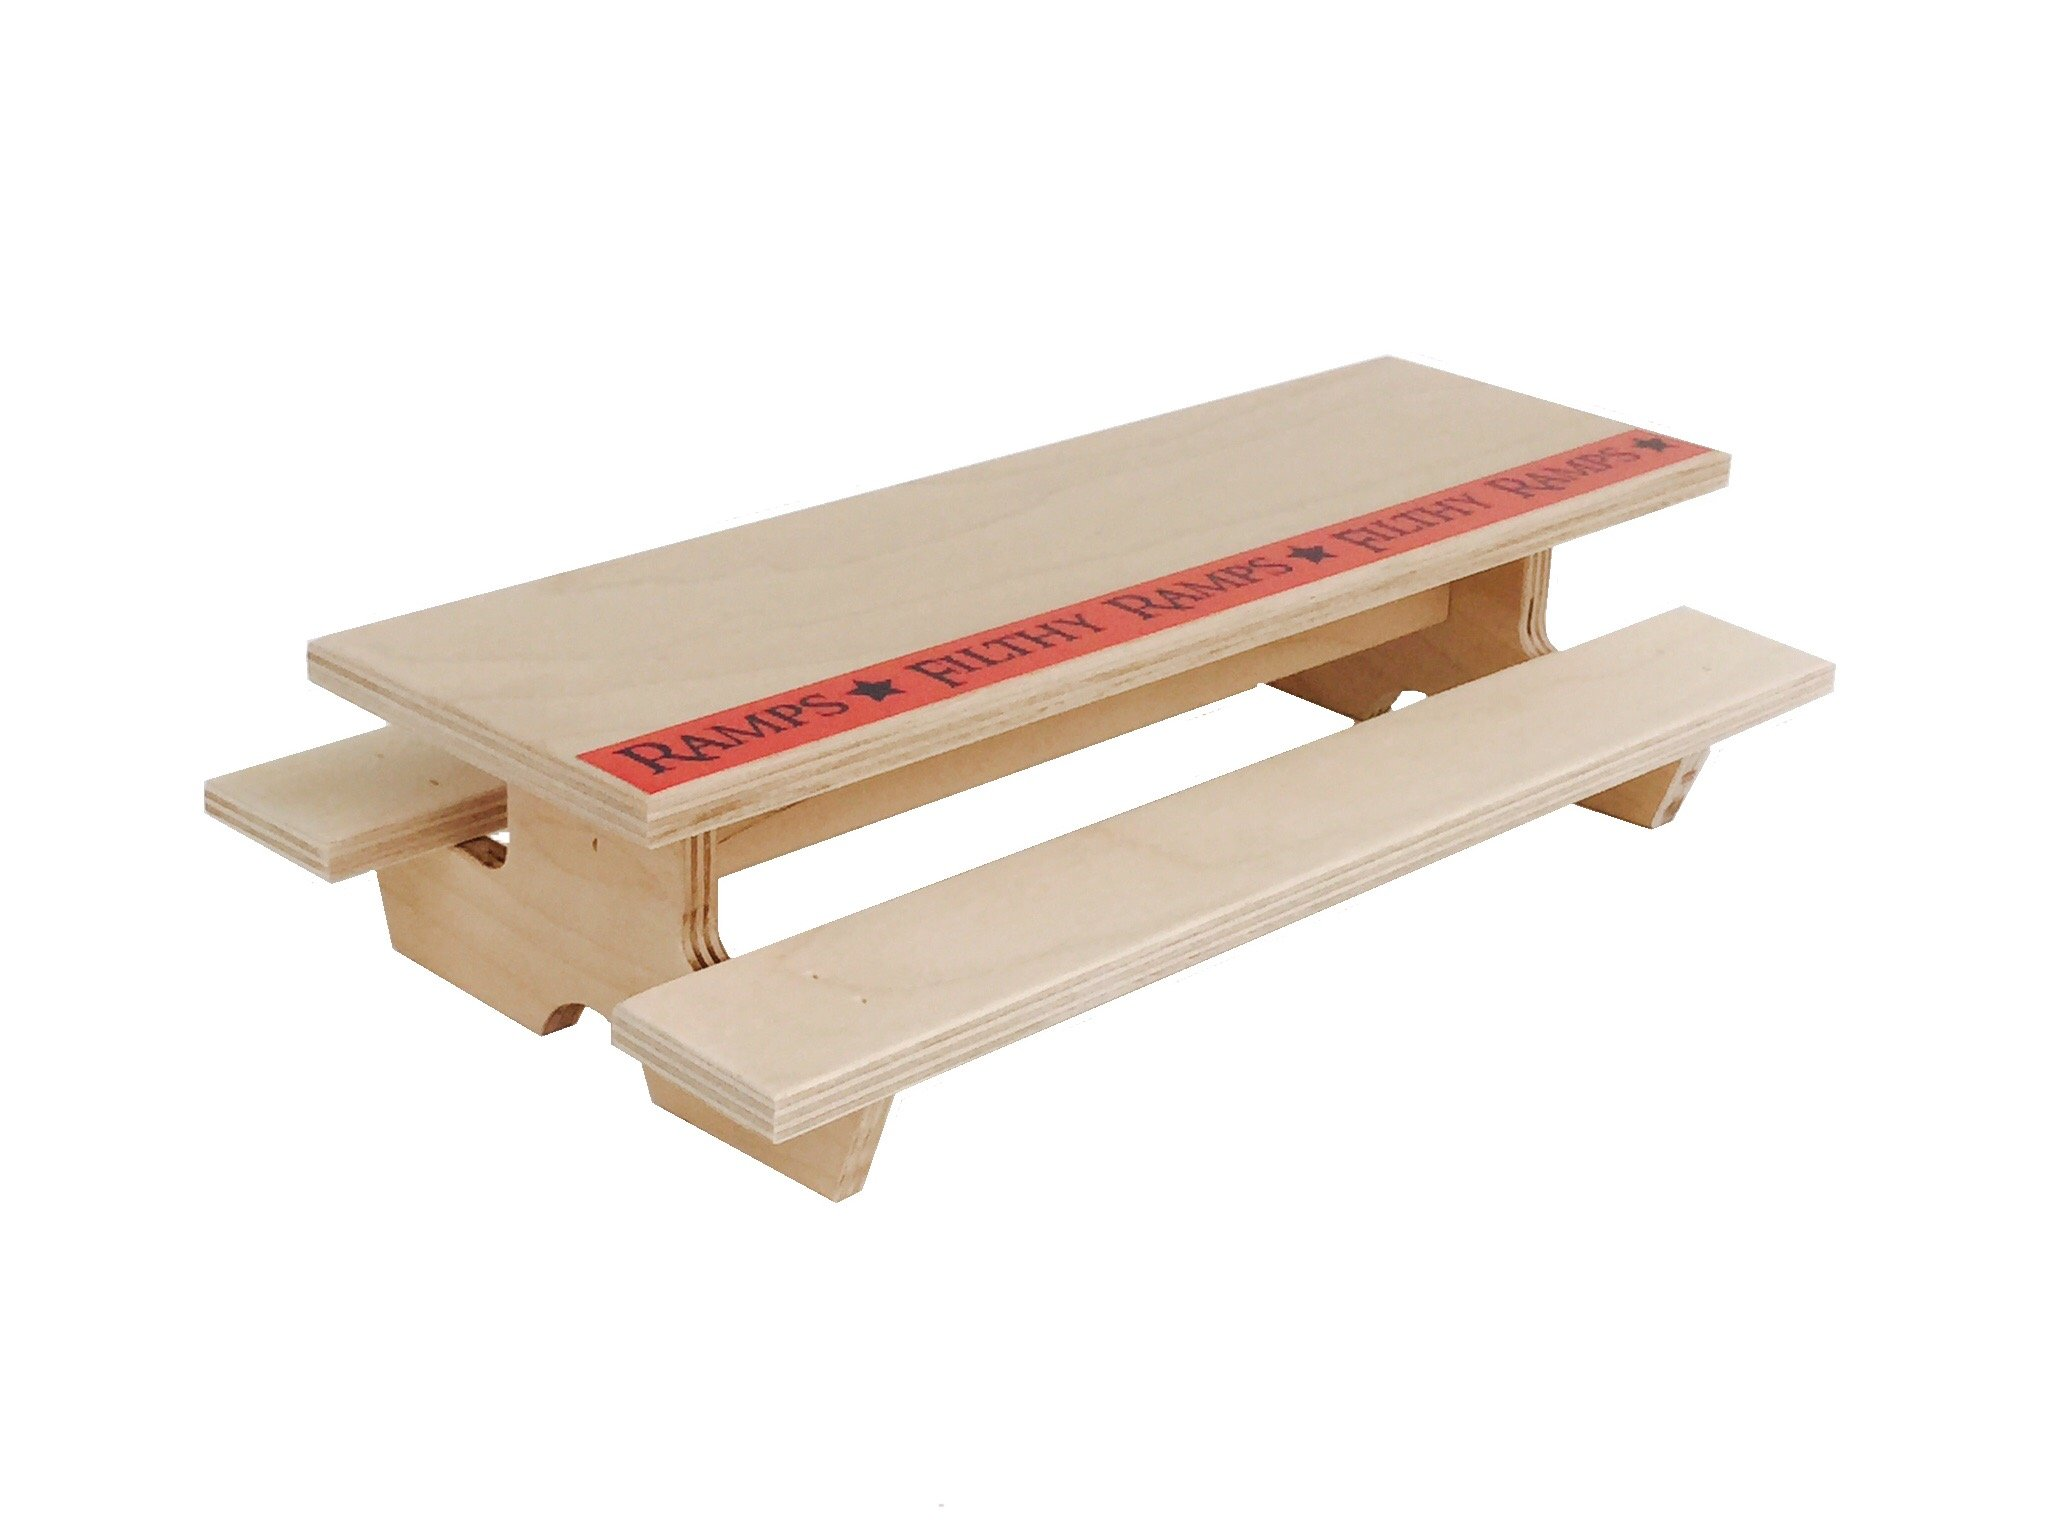 Filthy Picnic Table for Fingerboarding By Filthy Ramps, for fingerboards and tech decks